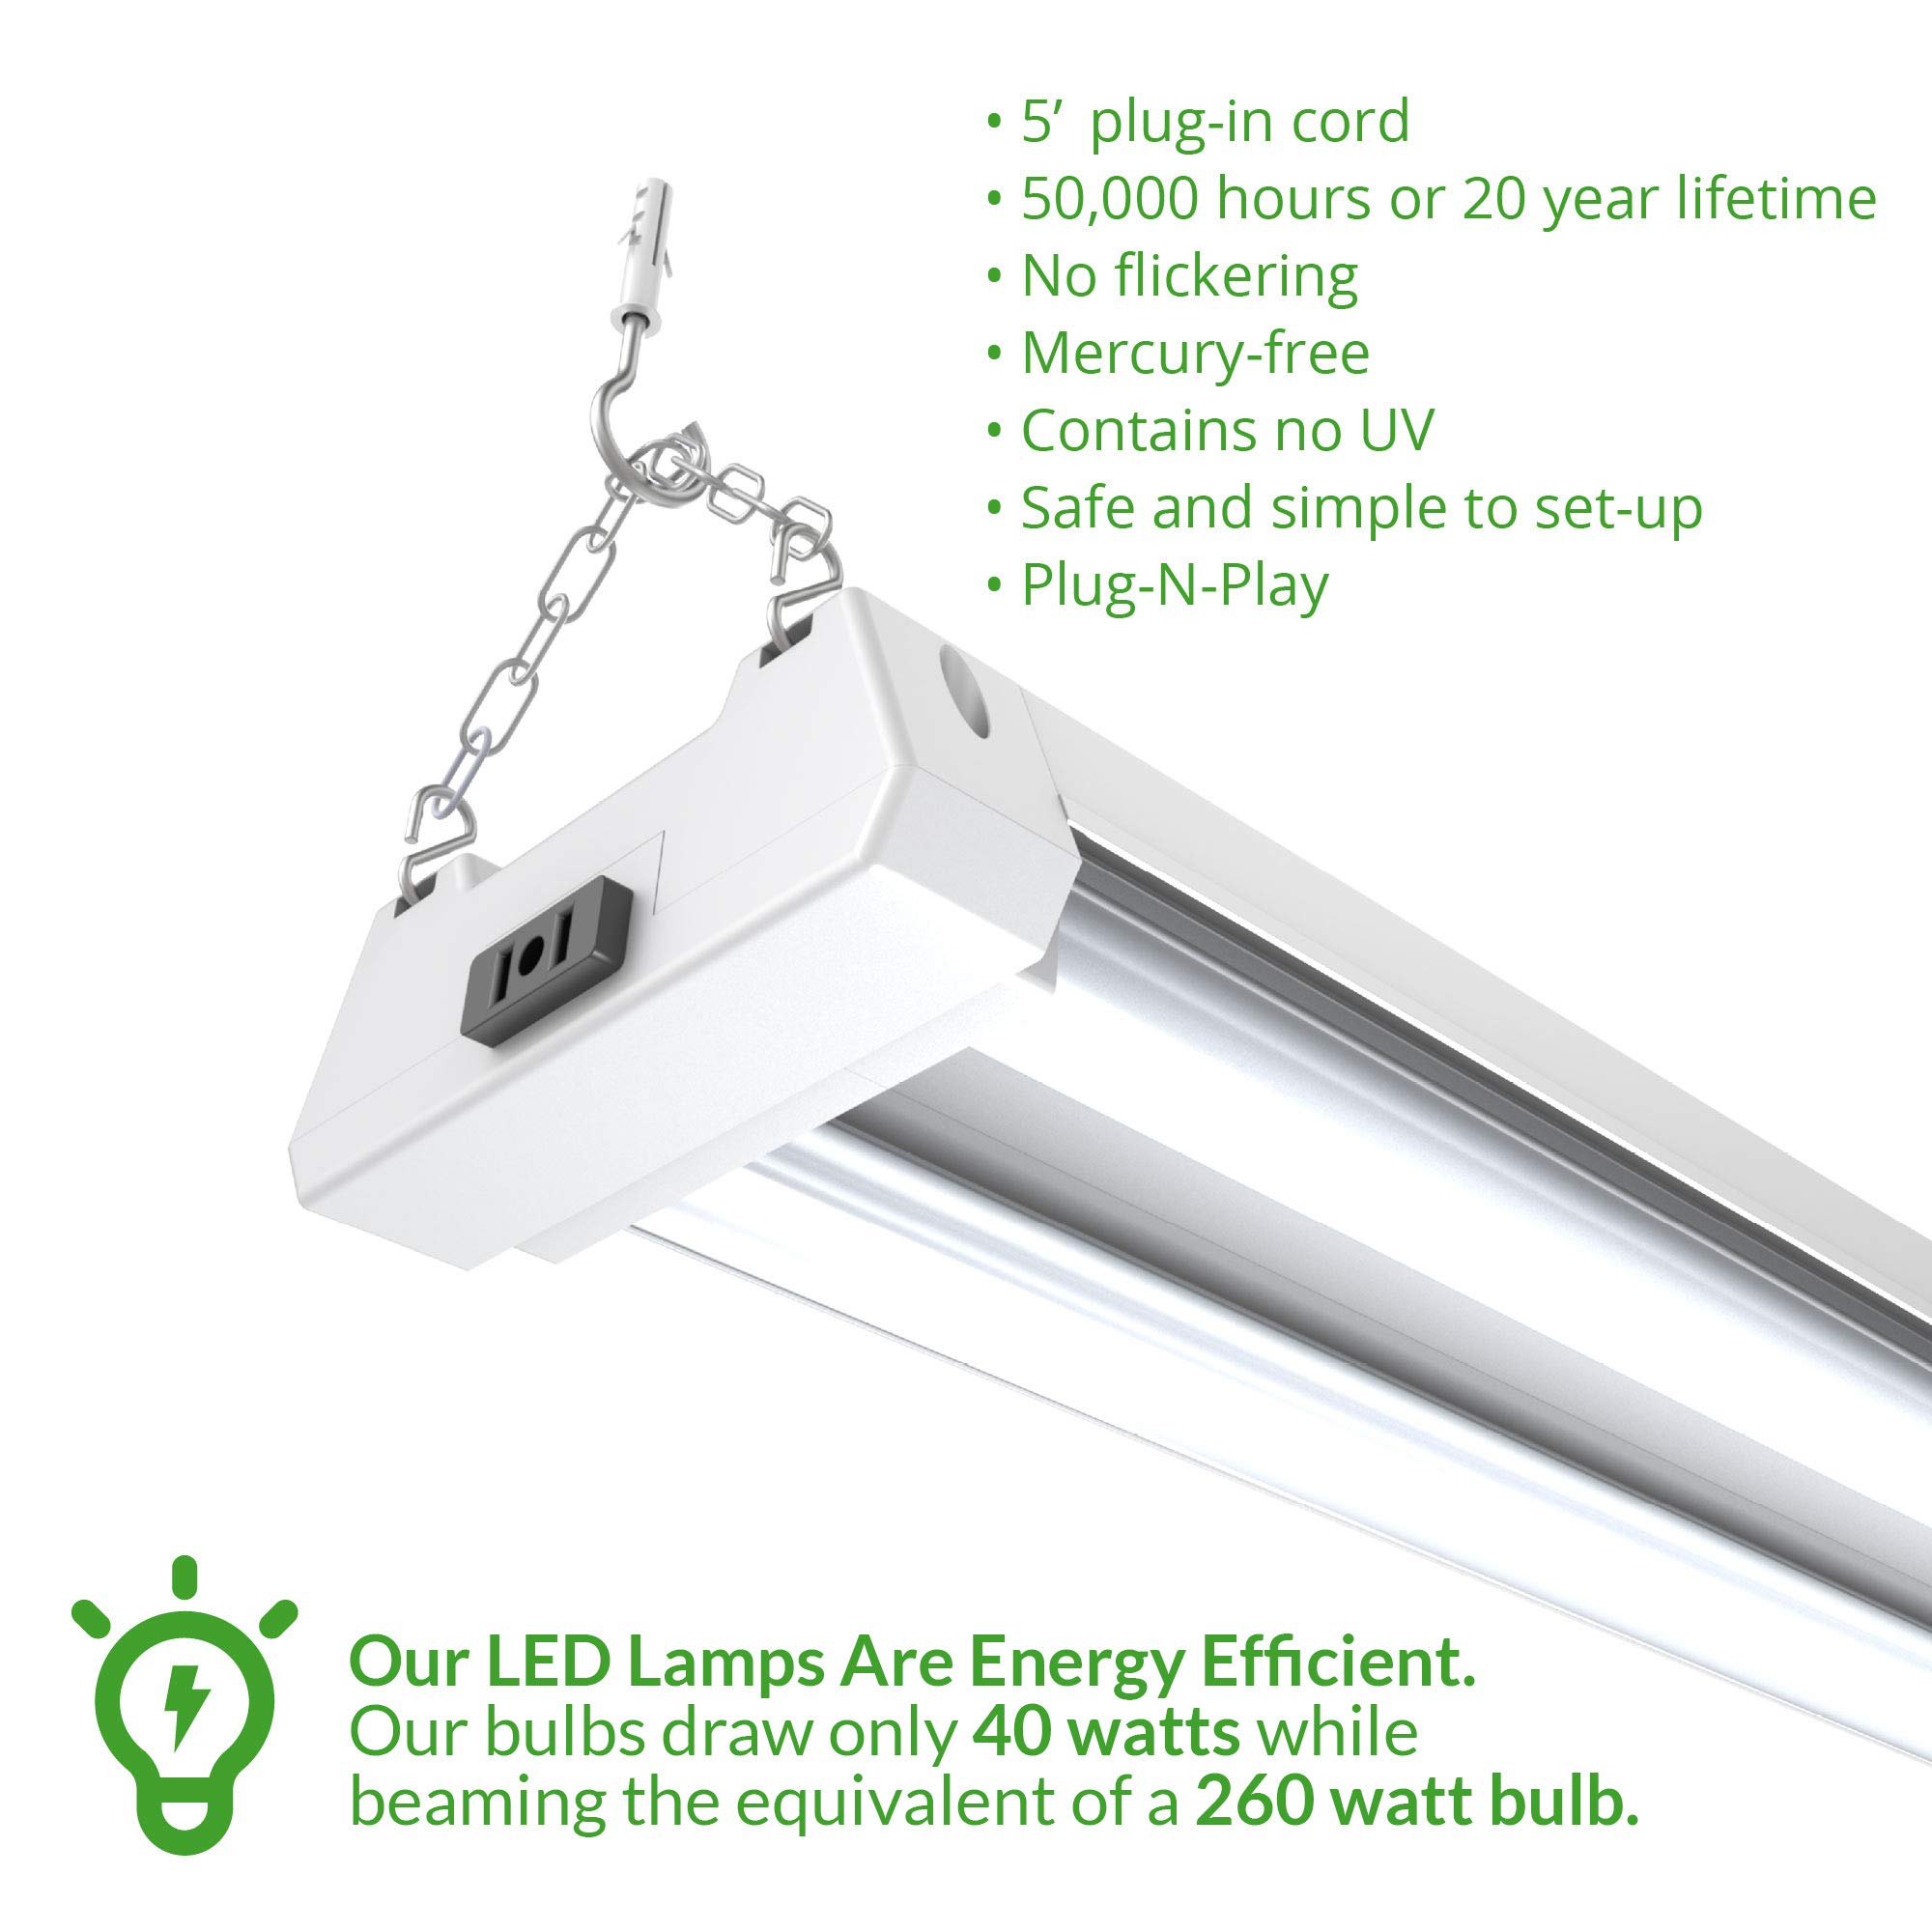 Sunco Lighting 4 Pack 4ft 48 inch LED Utility Shop Light 40W (260W Equivalent) 5000K Kelvin Daylight, 4000 Lumens, Double Integrated Linkable Garage Ceiling Fixture, Frosted - Energy Star/ETL Listed by Sunco Lighting (Image #4)